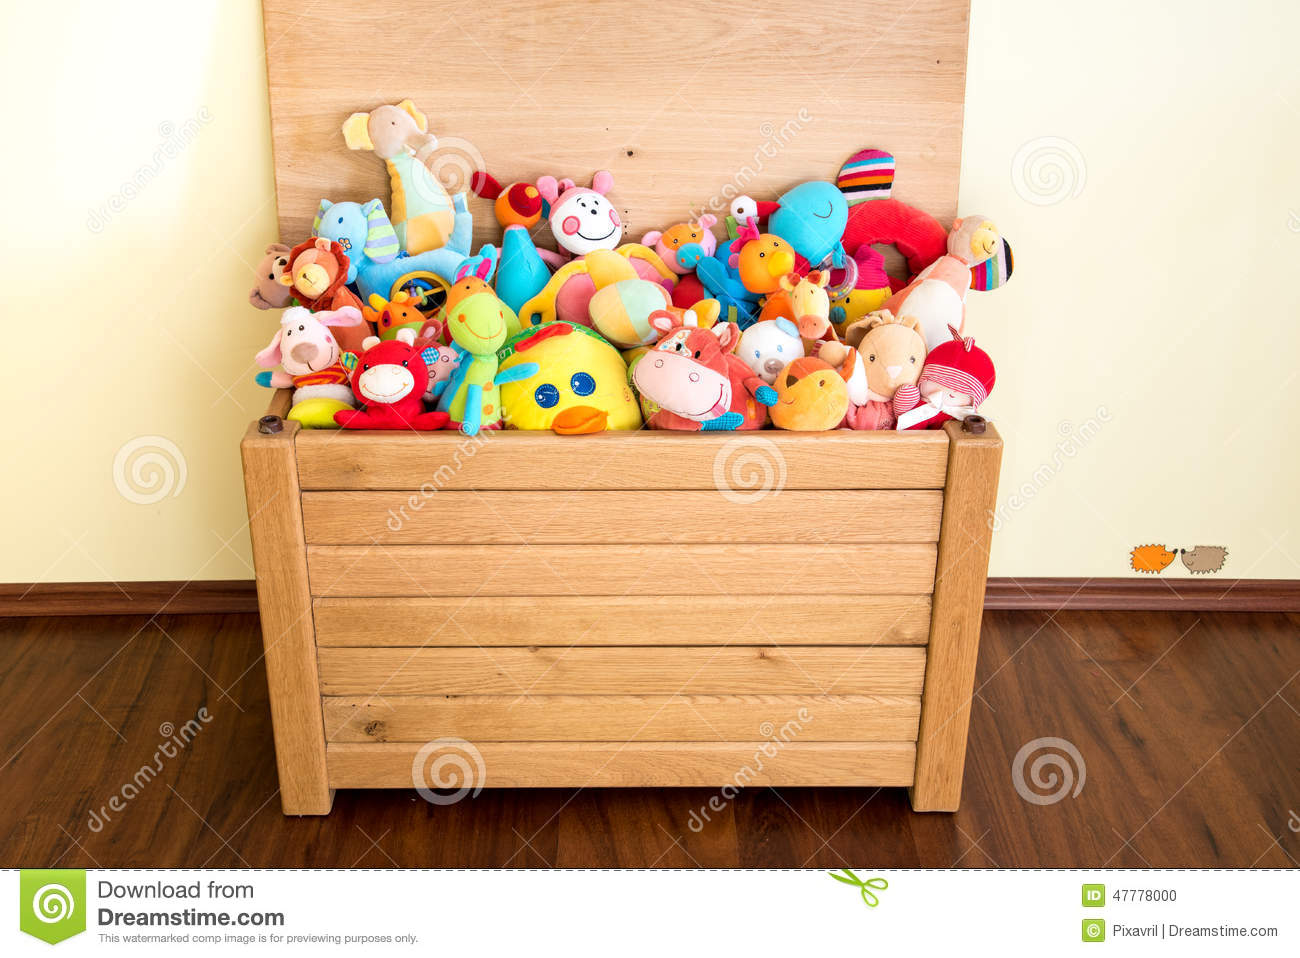 Toy Box Full Of Soft Toys Stock Photo - Image: 47778000